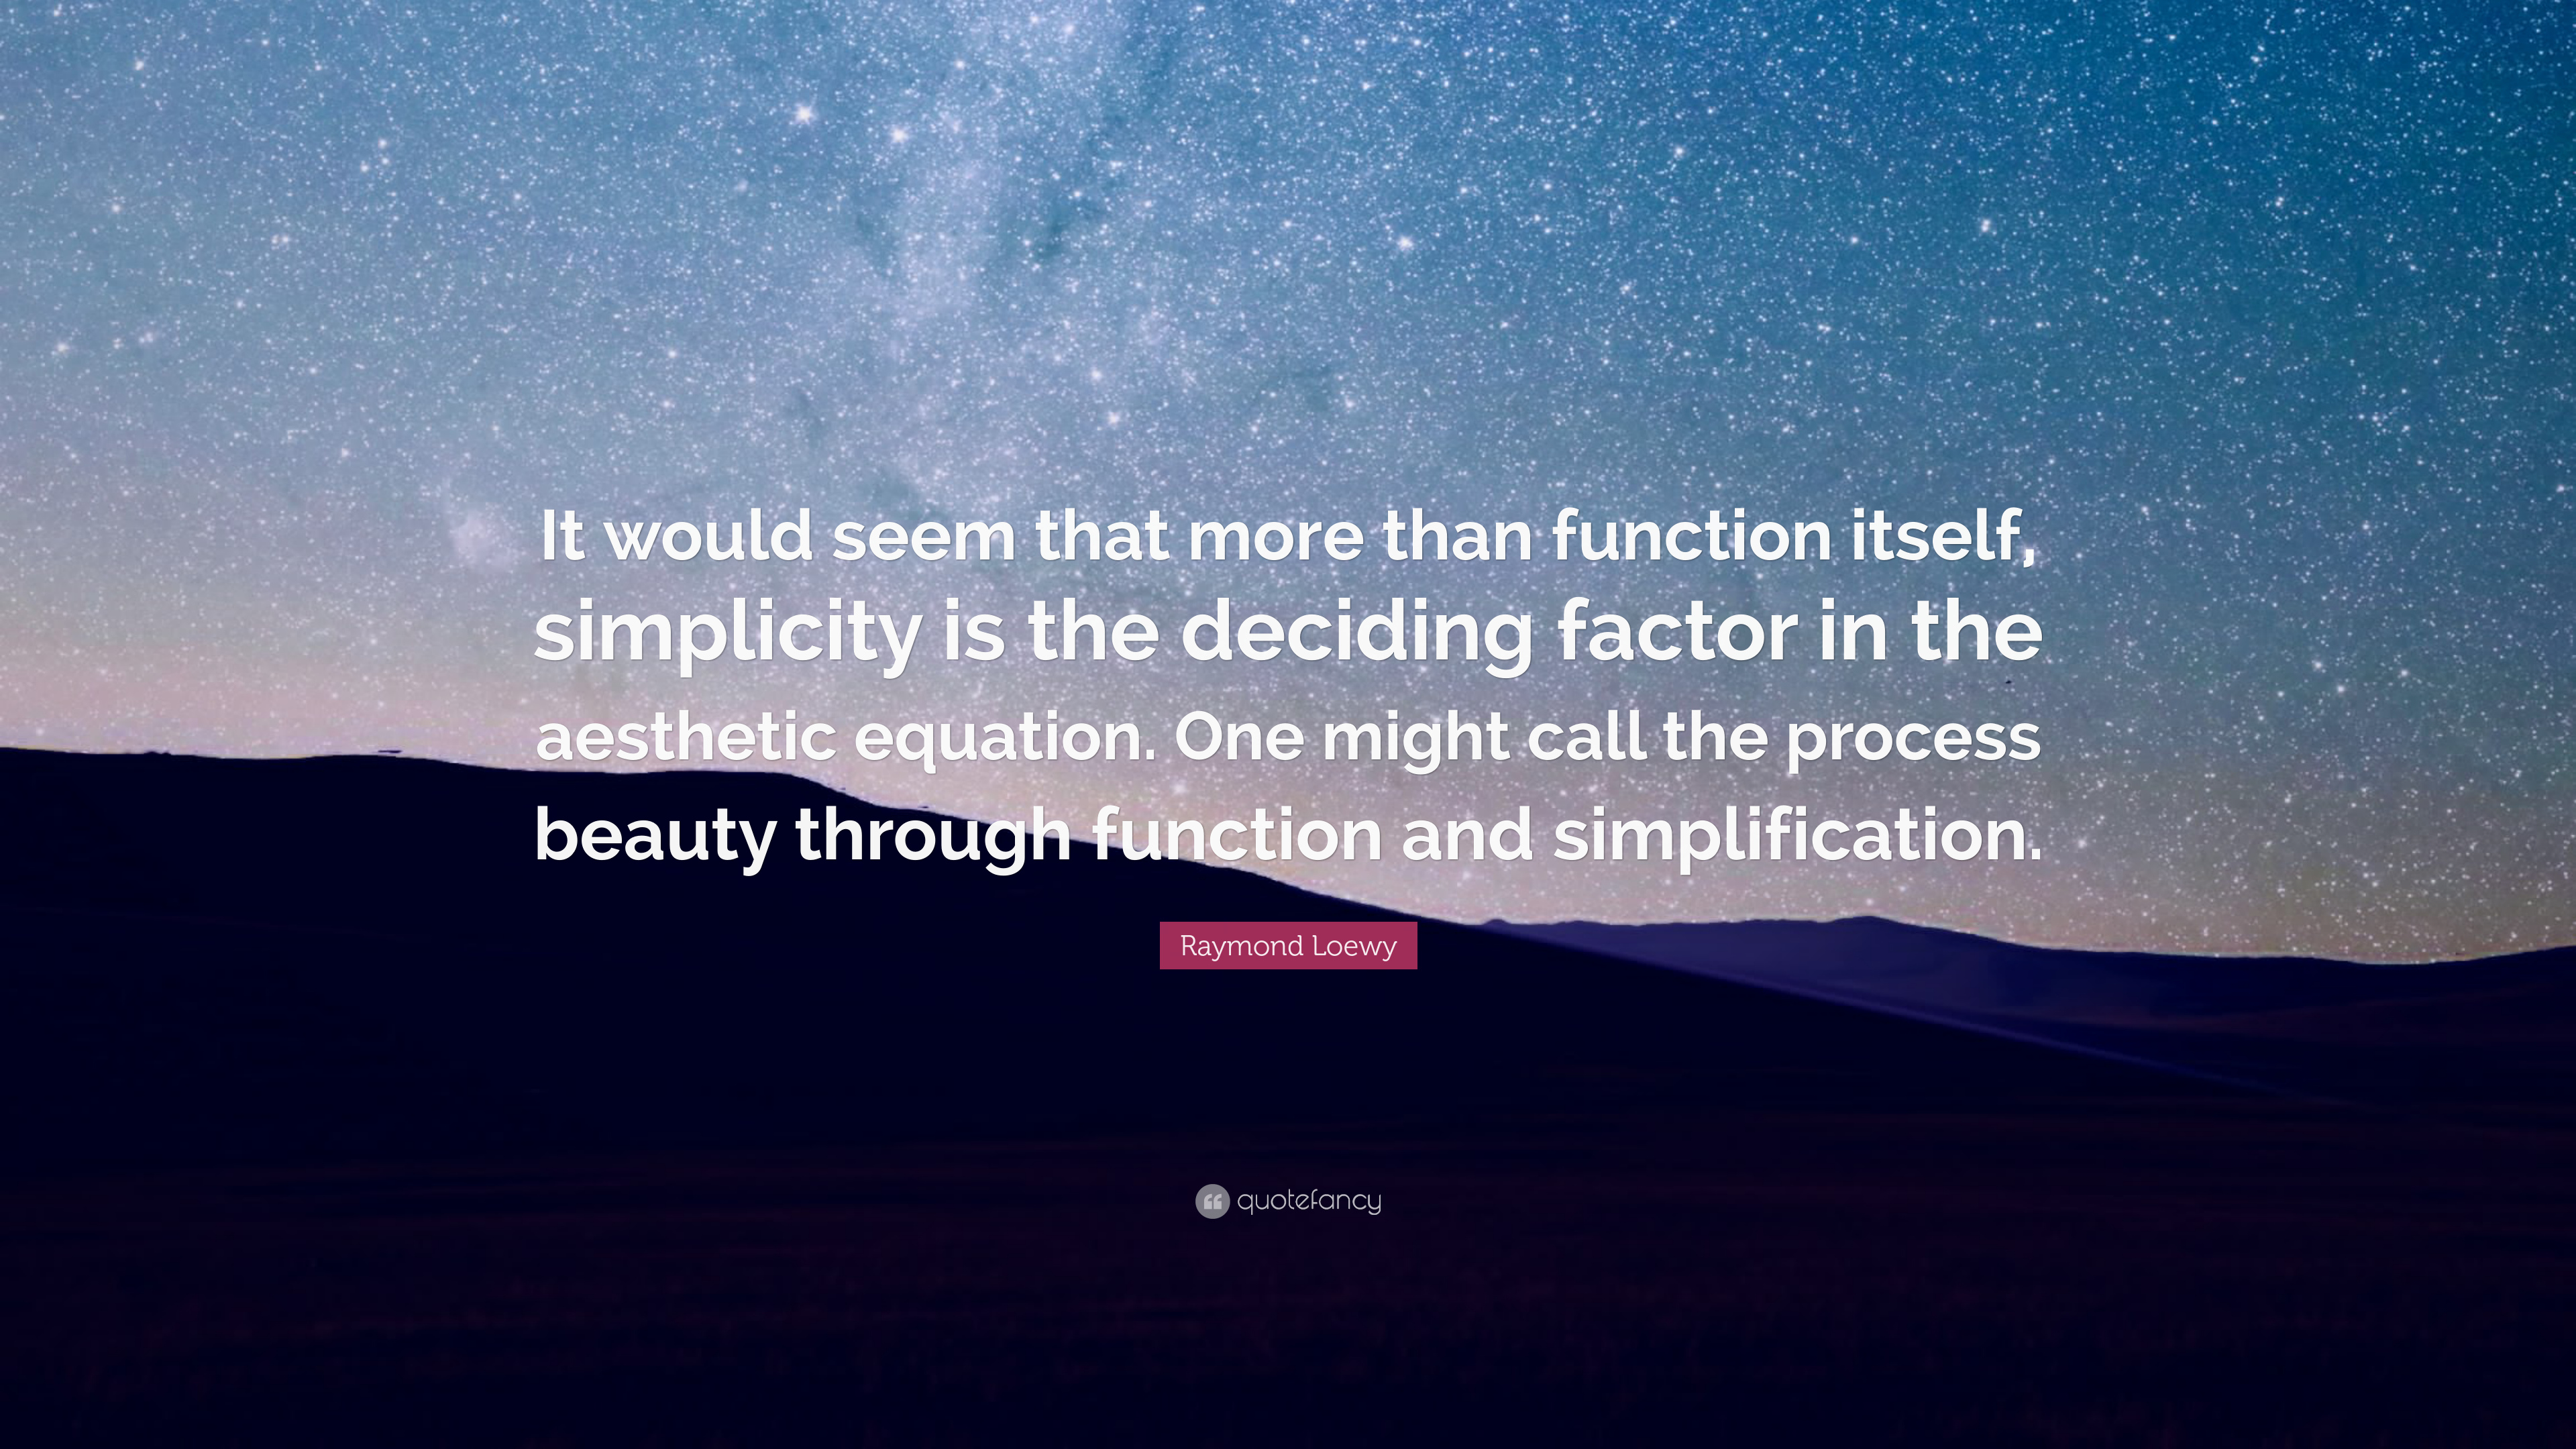 Raymond Loewy Quote It Would Seem That More Than Function Itself Simplicity Is The Deciding Factor In The Aesthetic Equation One Might Cal 7 Wallpapers Quotefancy